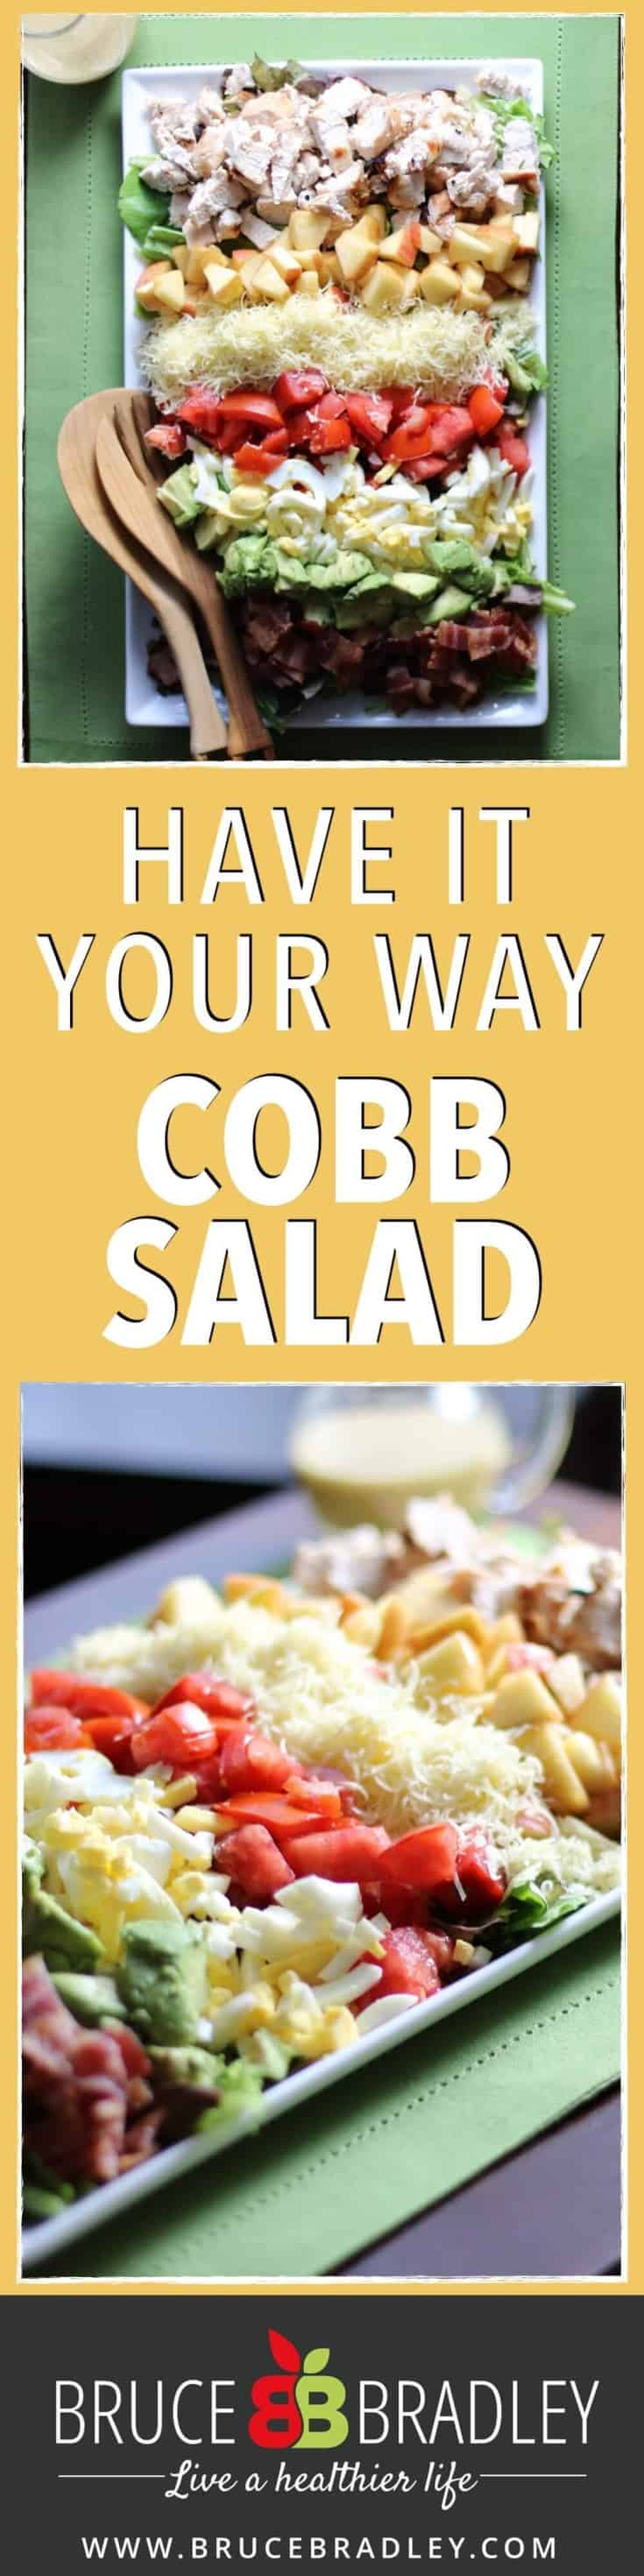 """The traditional Cobb Salad with a """"Have It Your Way"""" twist! Pair your favorite greens, veggies, fruits, and toppings to create your own, perfect Cobb Salad!"""